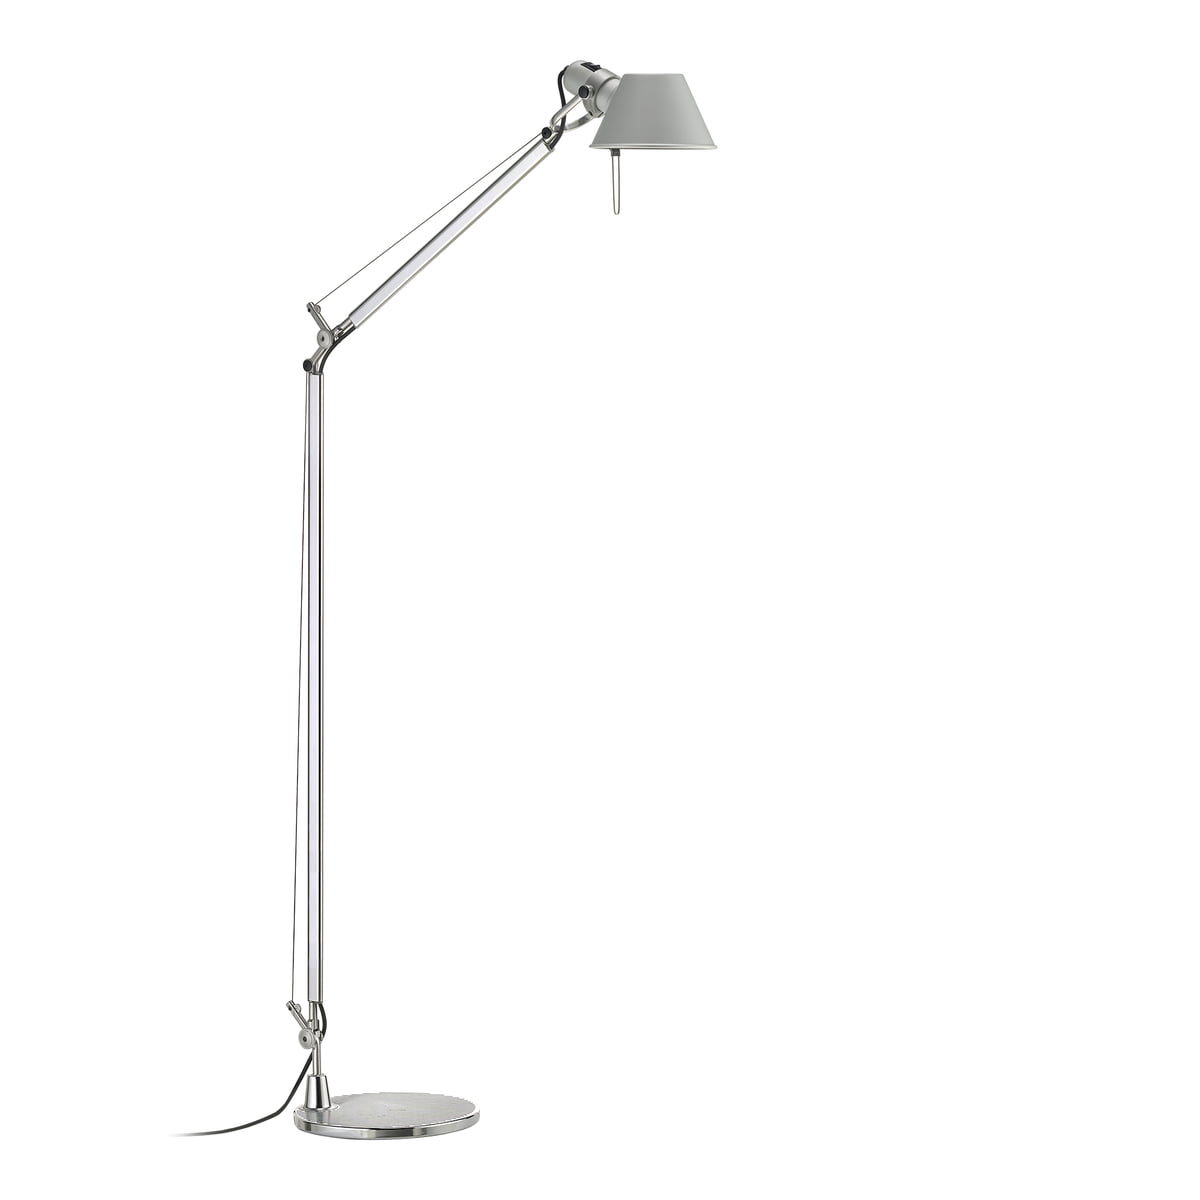 Artemide Tolomeo Spare Parts Cardbk Co